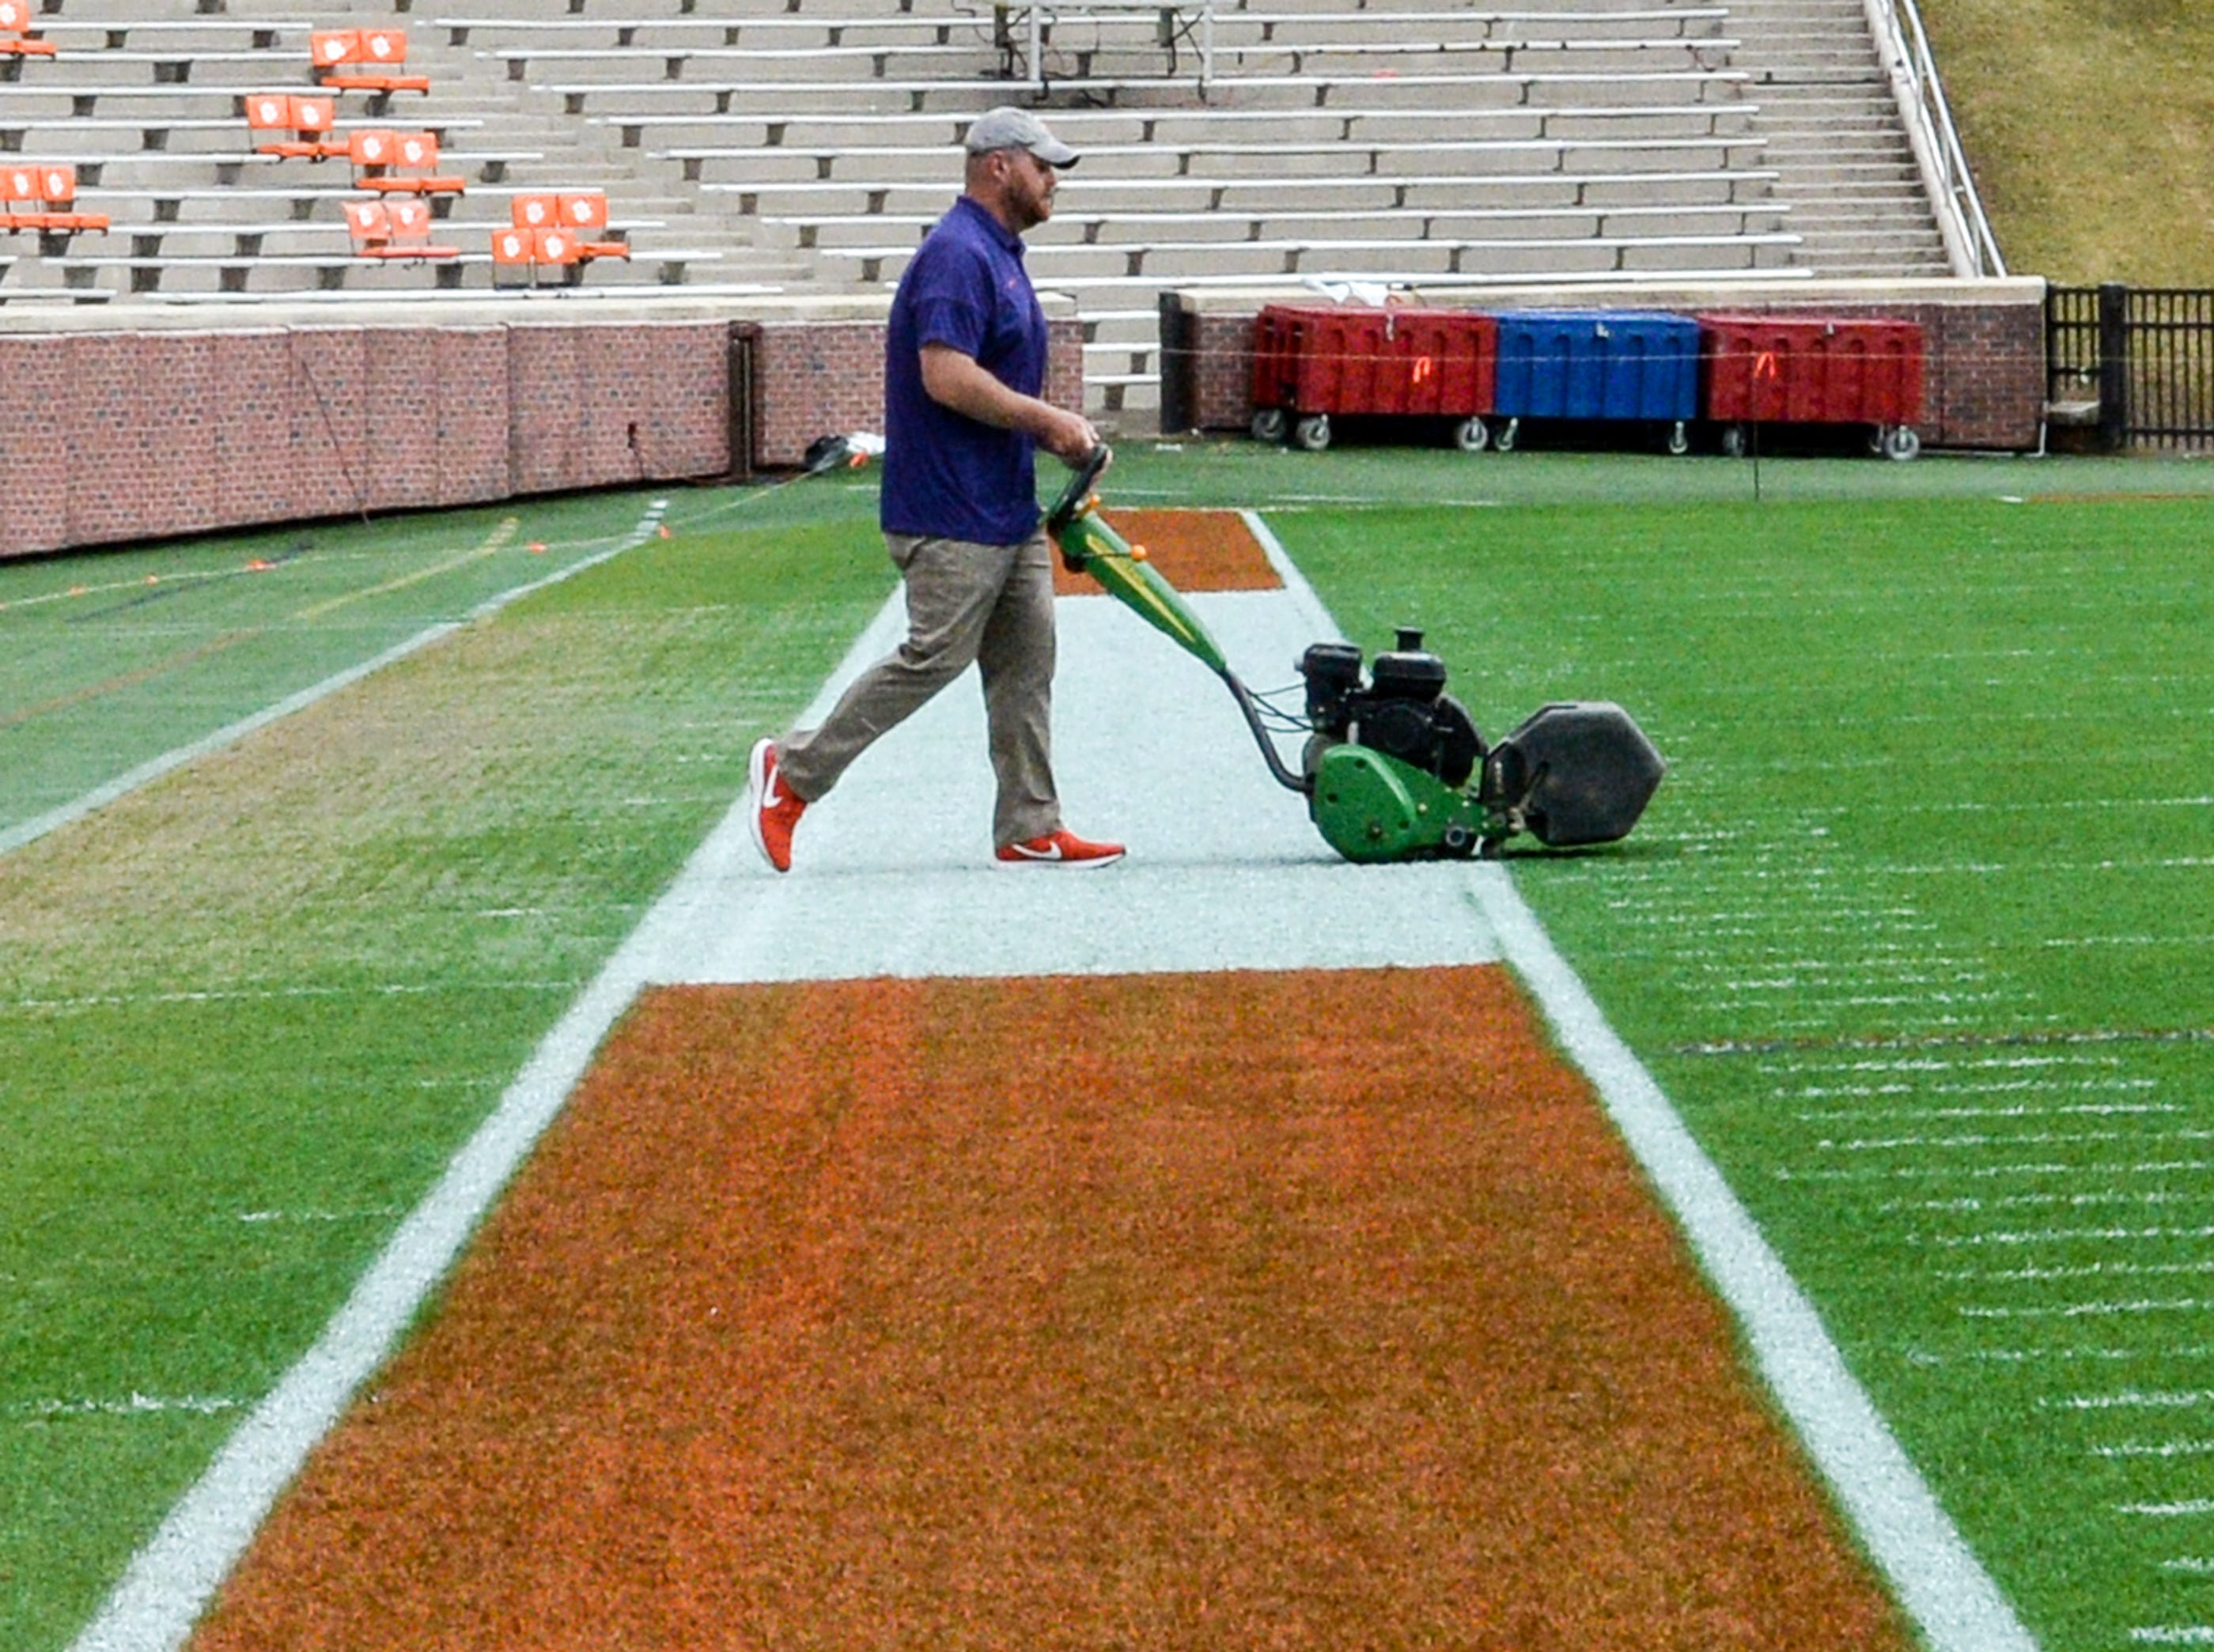 Dan McKinney, Clemson University Athletic Grounds, runs a grass trimming machine over the field seven hours before kickoff in Memorial Stadium, before the South Carolina at Clemson football game in Clemson on Saturday, November 24, 2018.